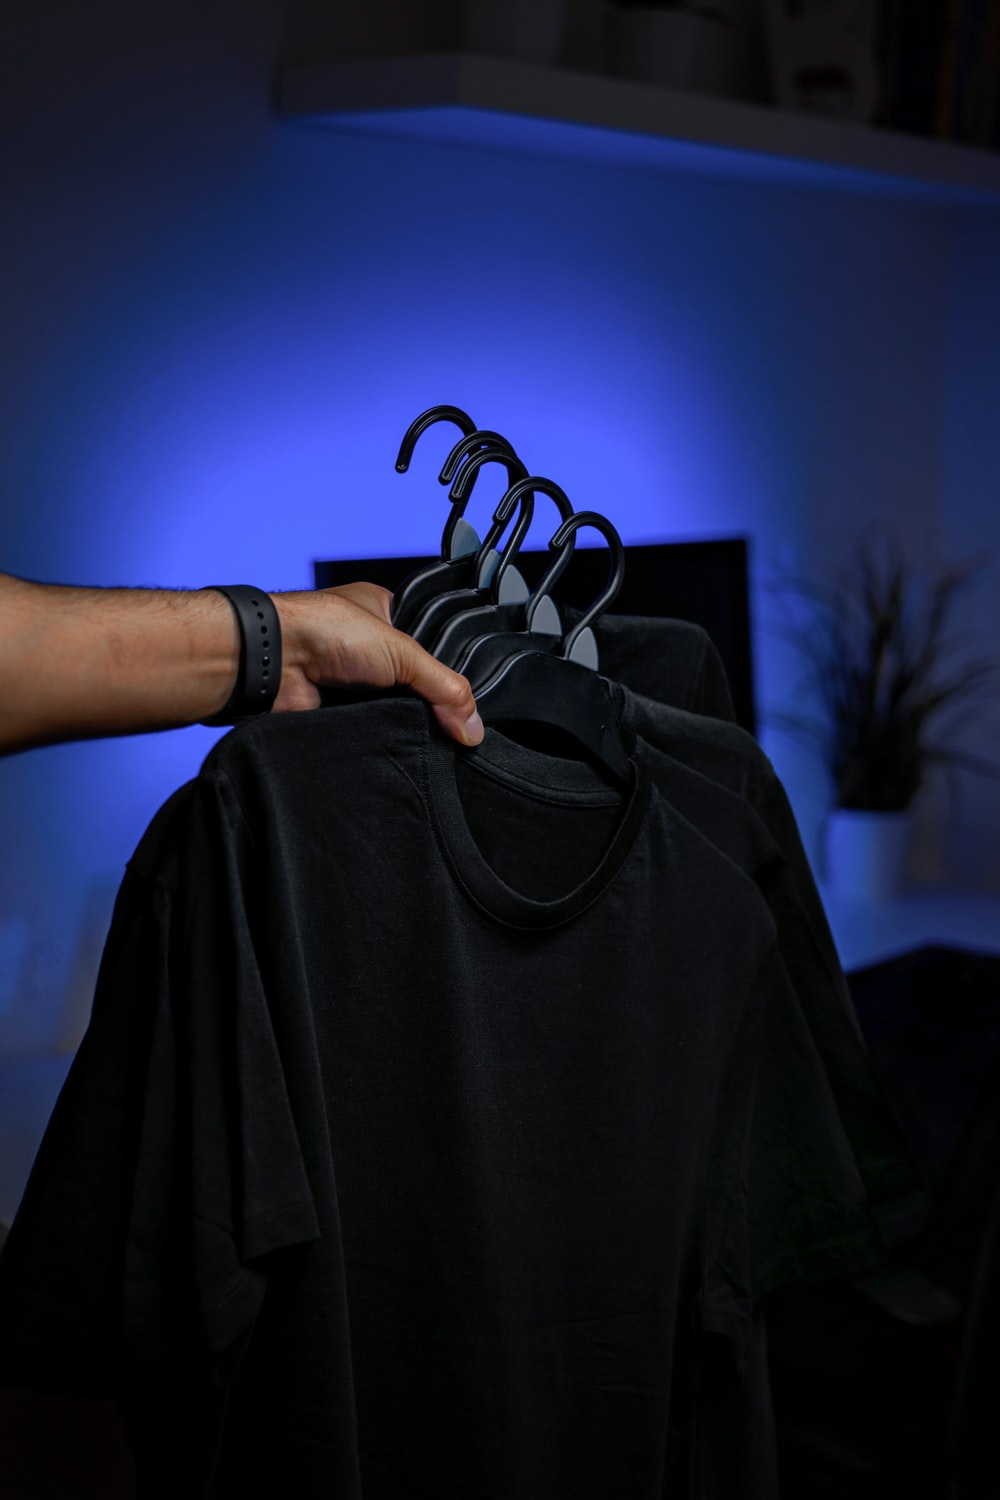 person holding black textile with blue light